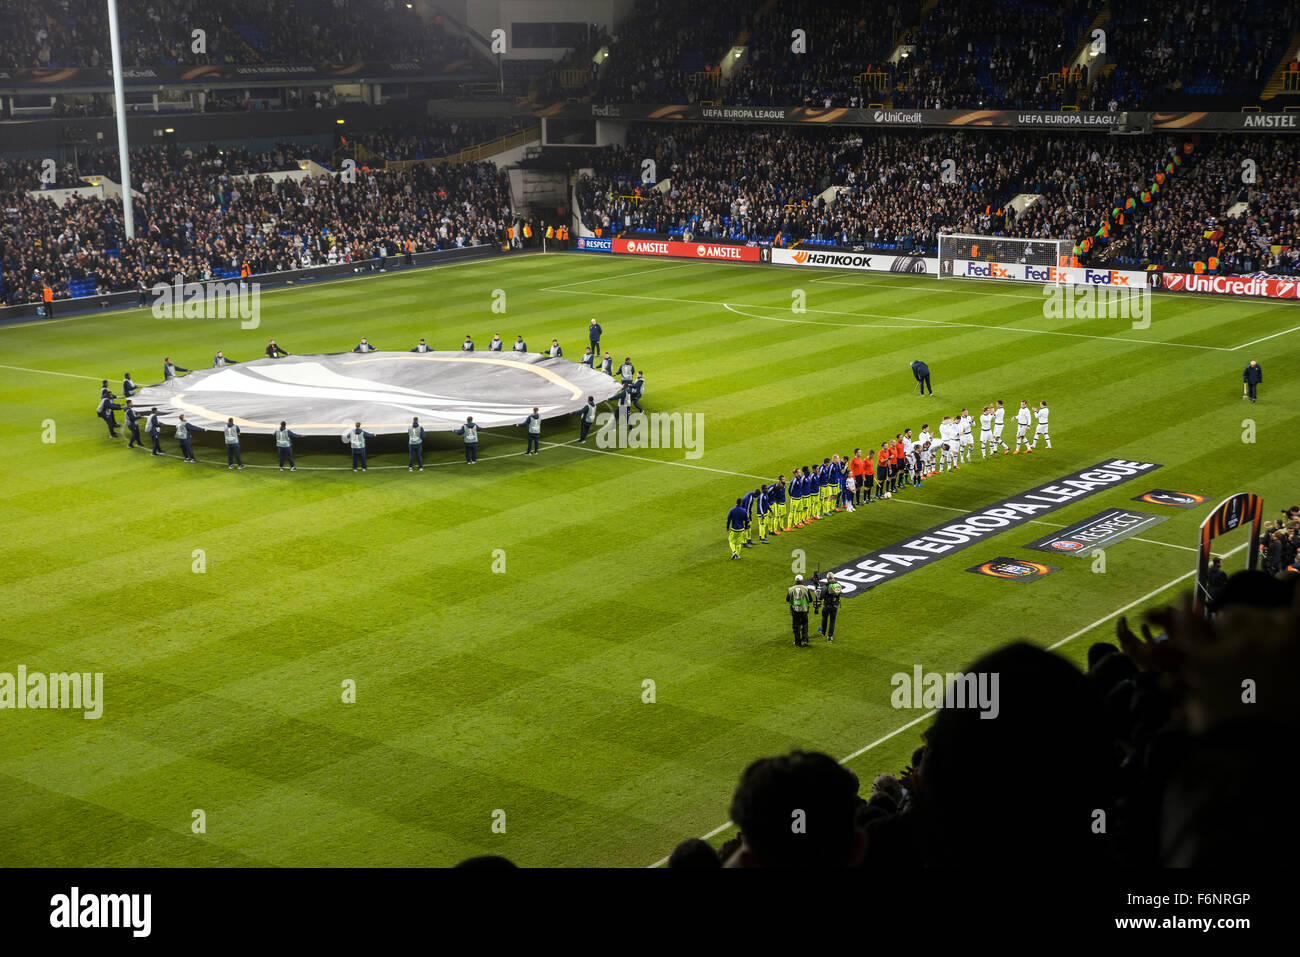 Tottenham Hotspur v R.S.C. Anderlecht in the group stages of the Europa League at White Hart Lane, London, UK, 5th - Stock Image